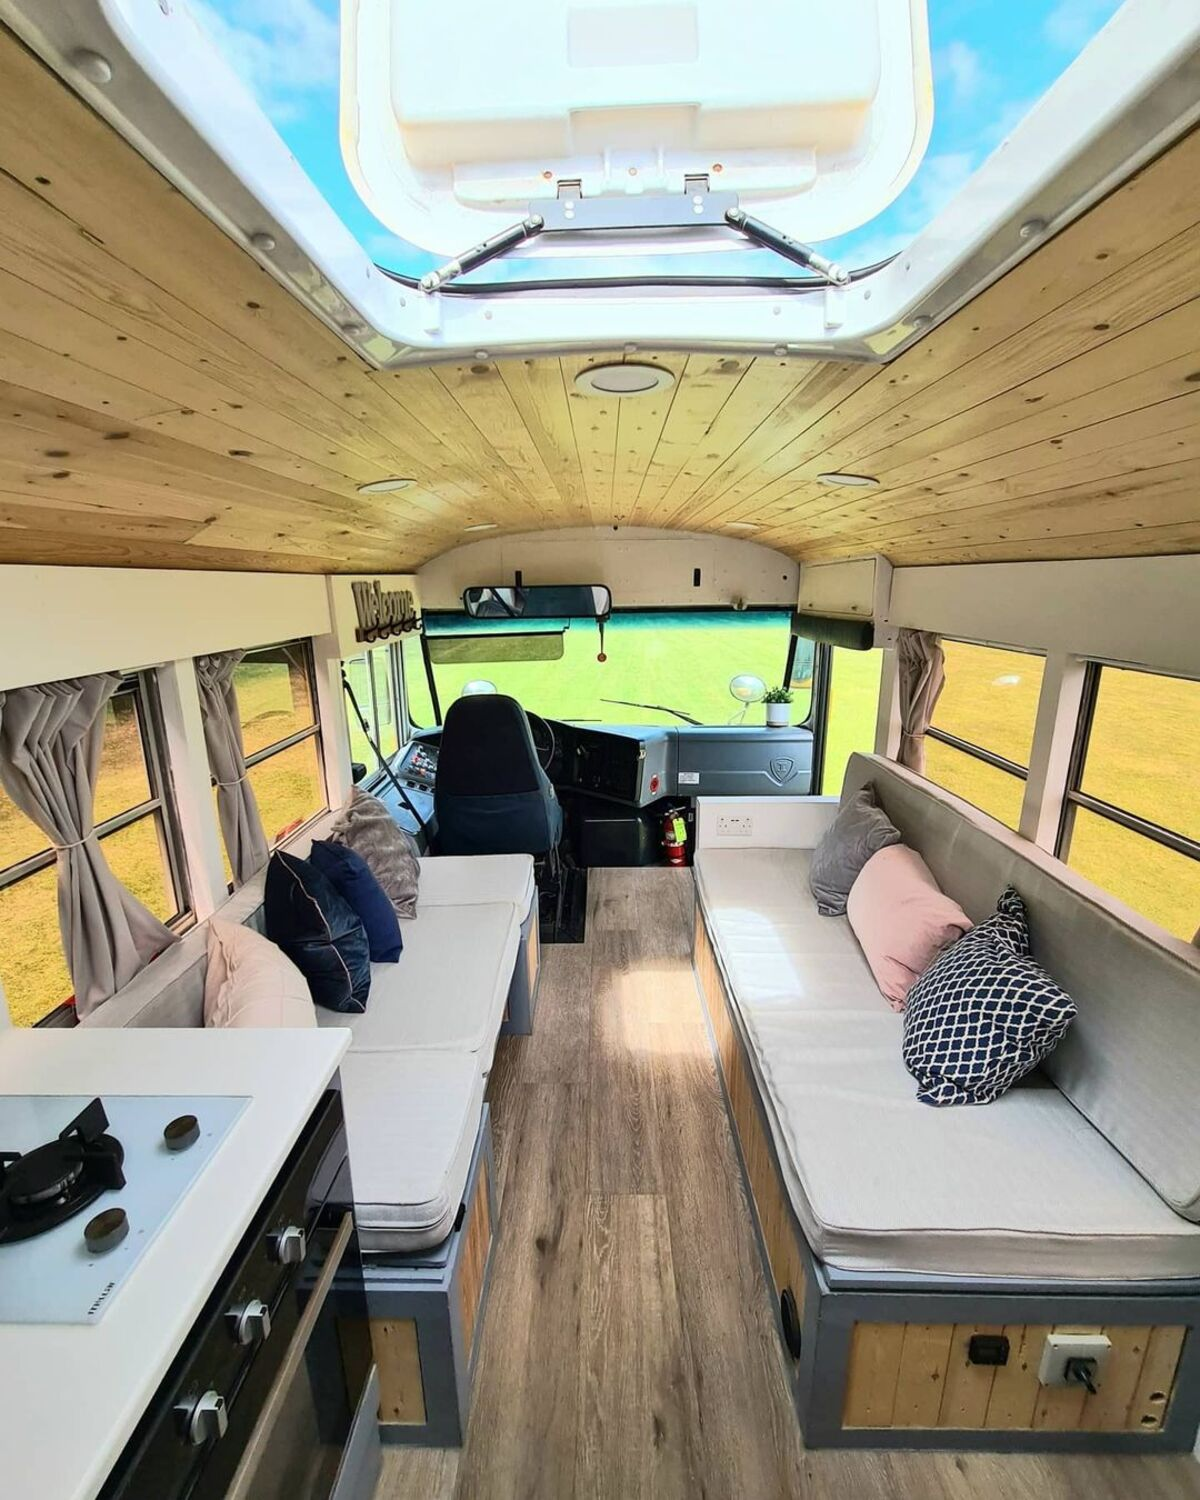 skoolie win 17 - British couple turned school bus into home complete with mini cinema - they are now raffling it off